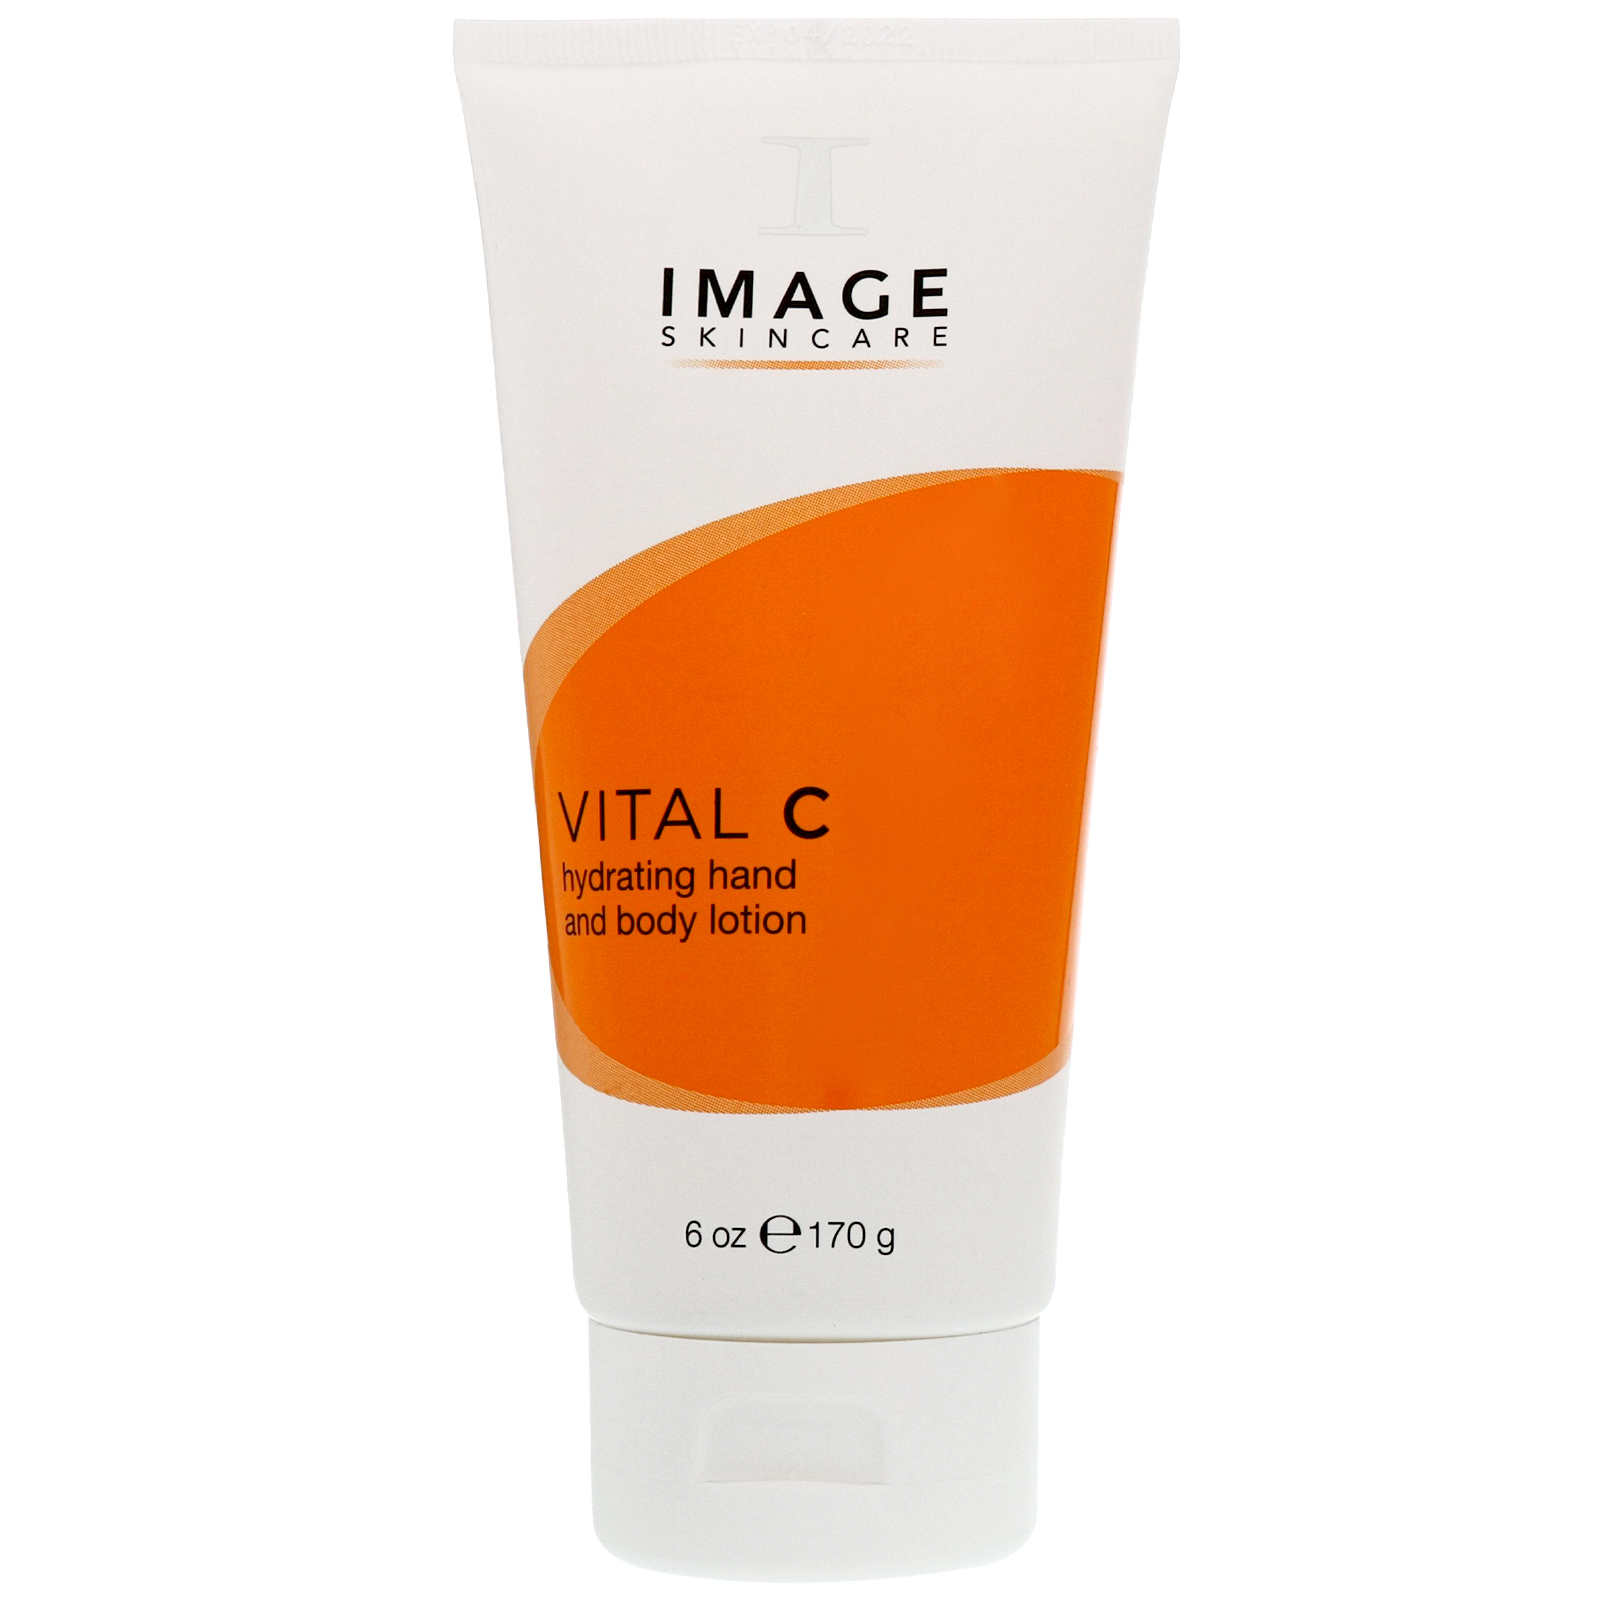 IMAGE Skincare Vital C Hydrating Hand And Body Lotion 170g / 6 oz.